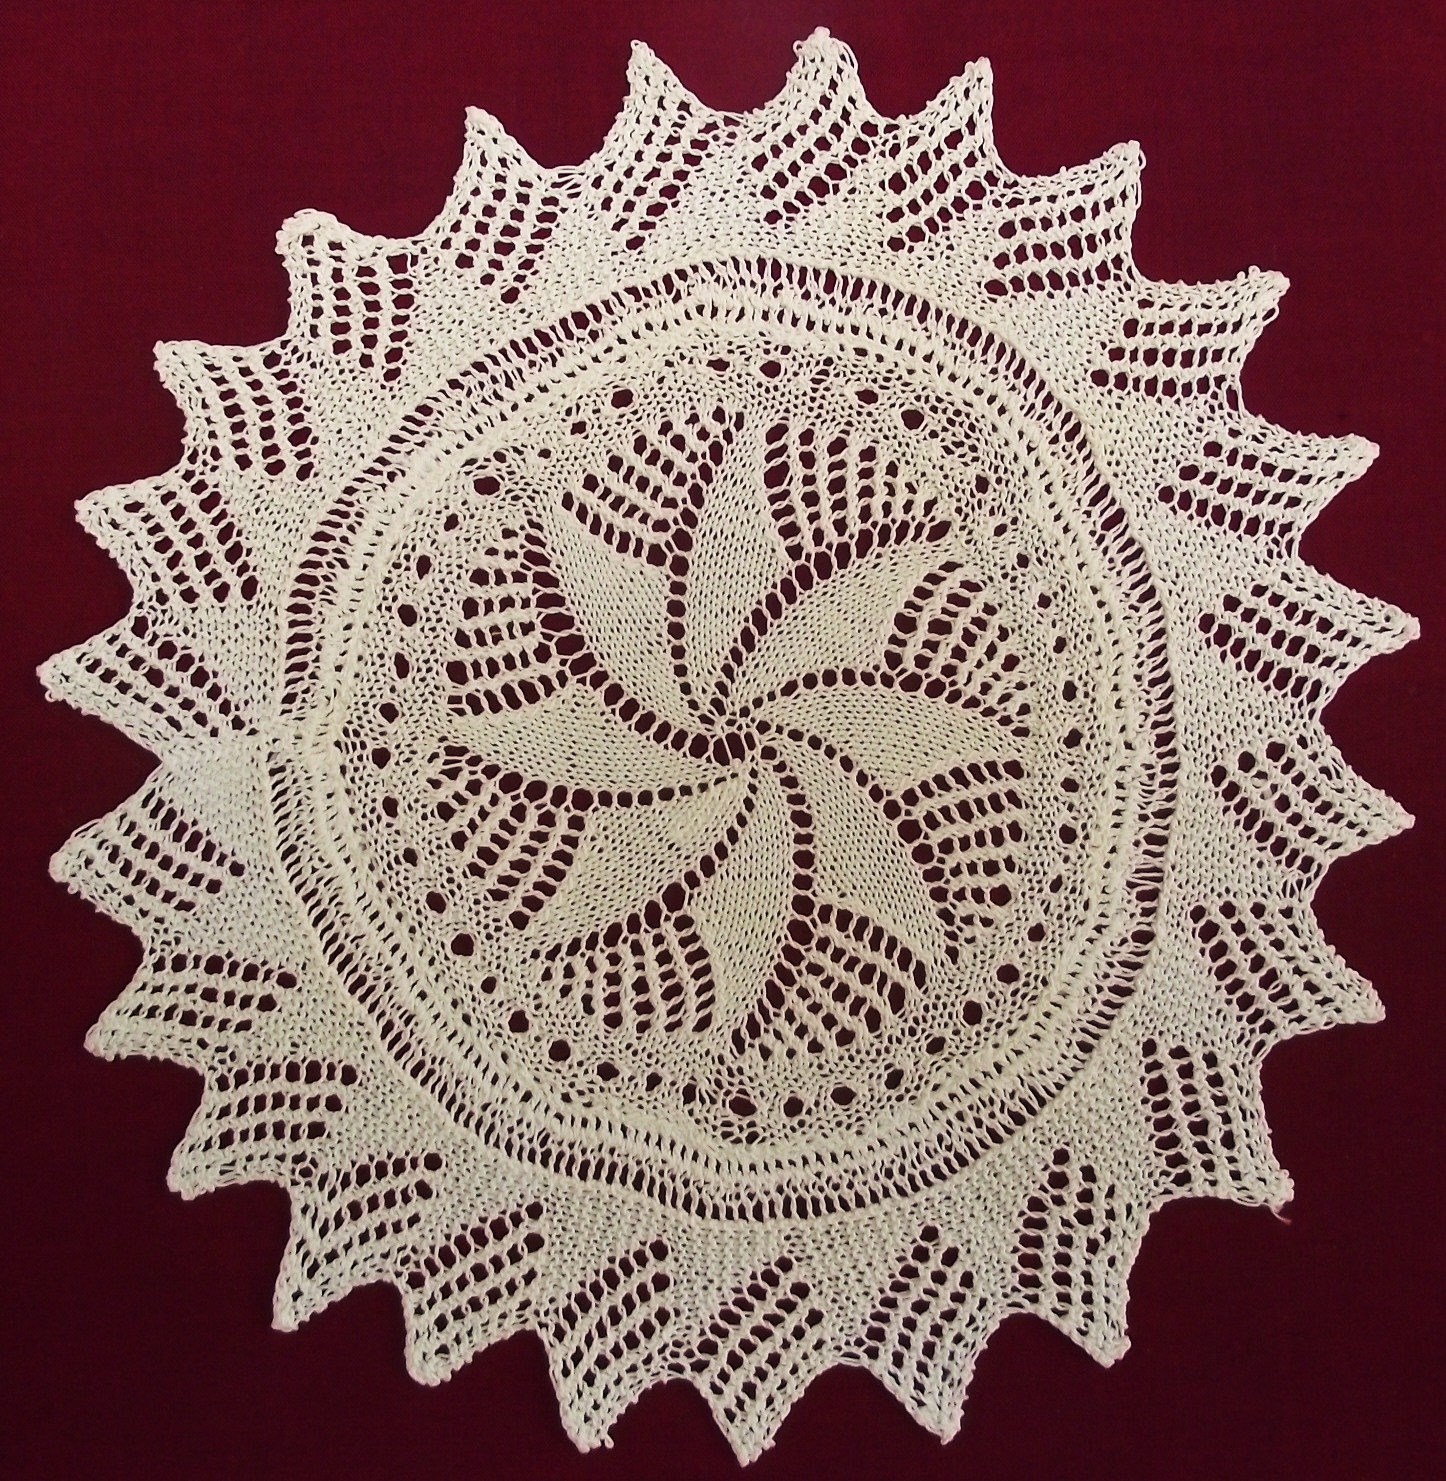 Knitting Patterns Lace Doilies : Lizzie Lenard Vintage Sewing: Knitted Lace Doily